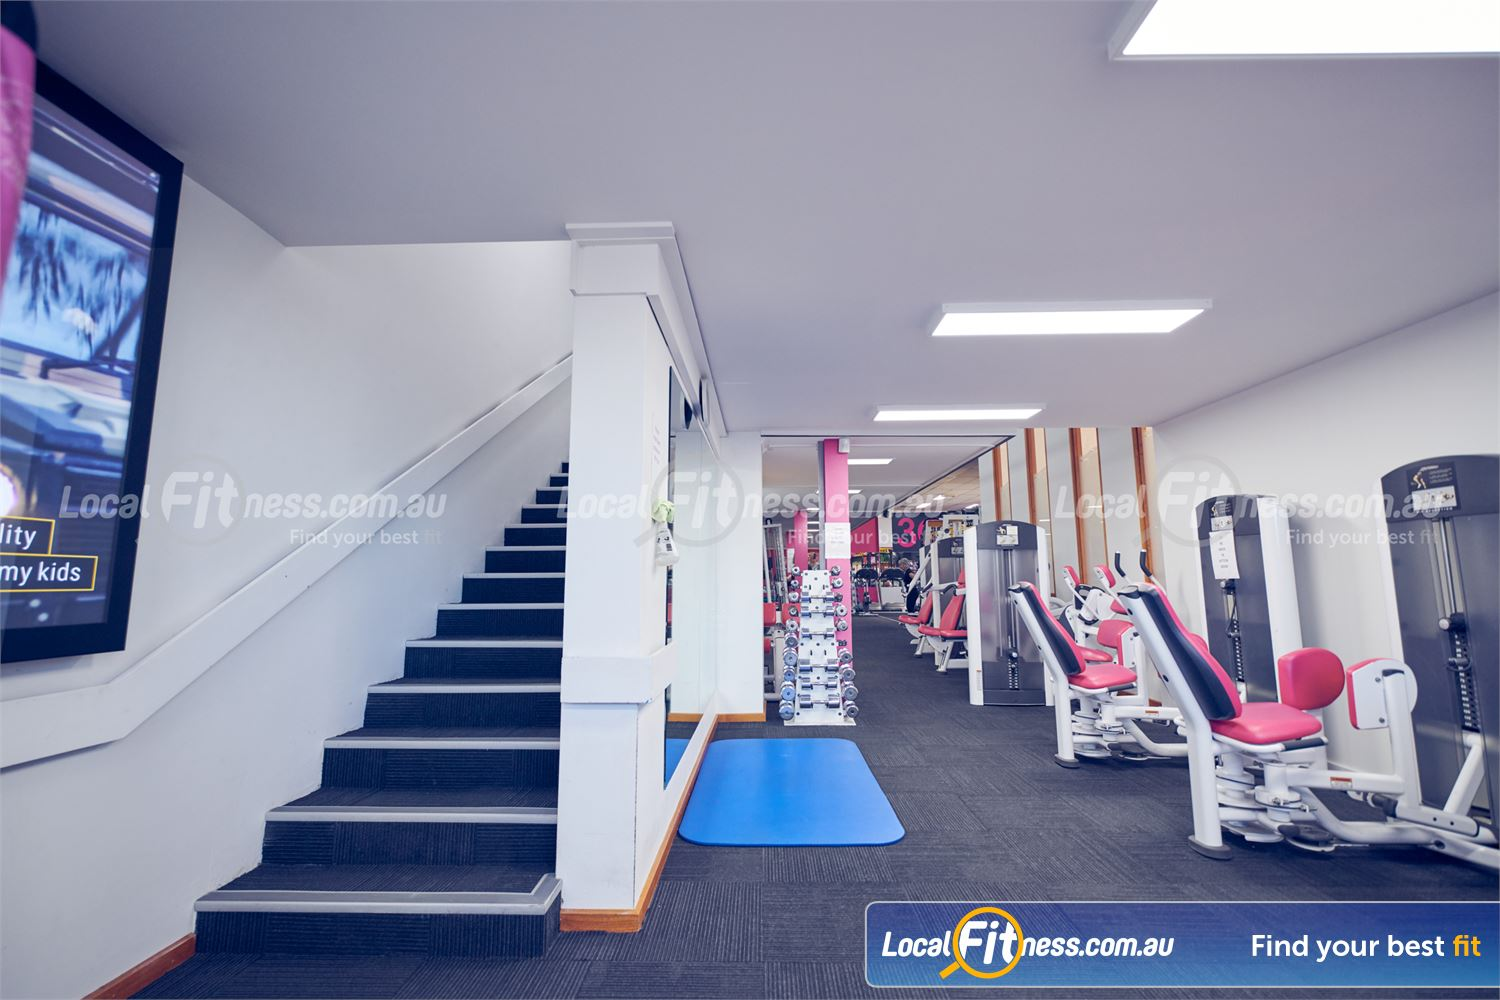 Fernwood Fitness Near Fitzroy Our Carlton gym provides 24/7 women's gym access.